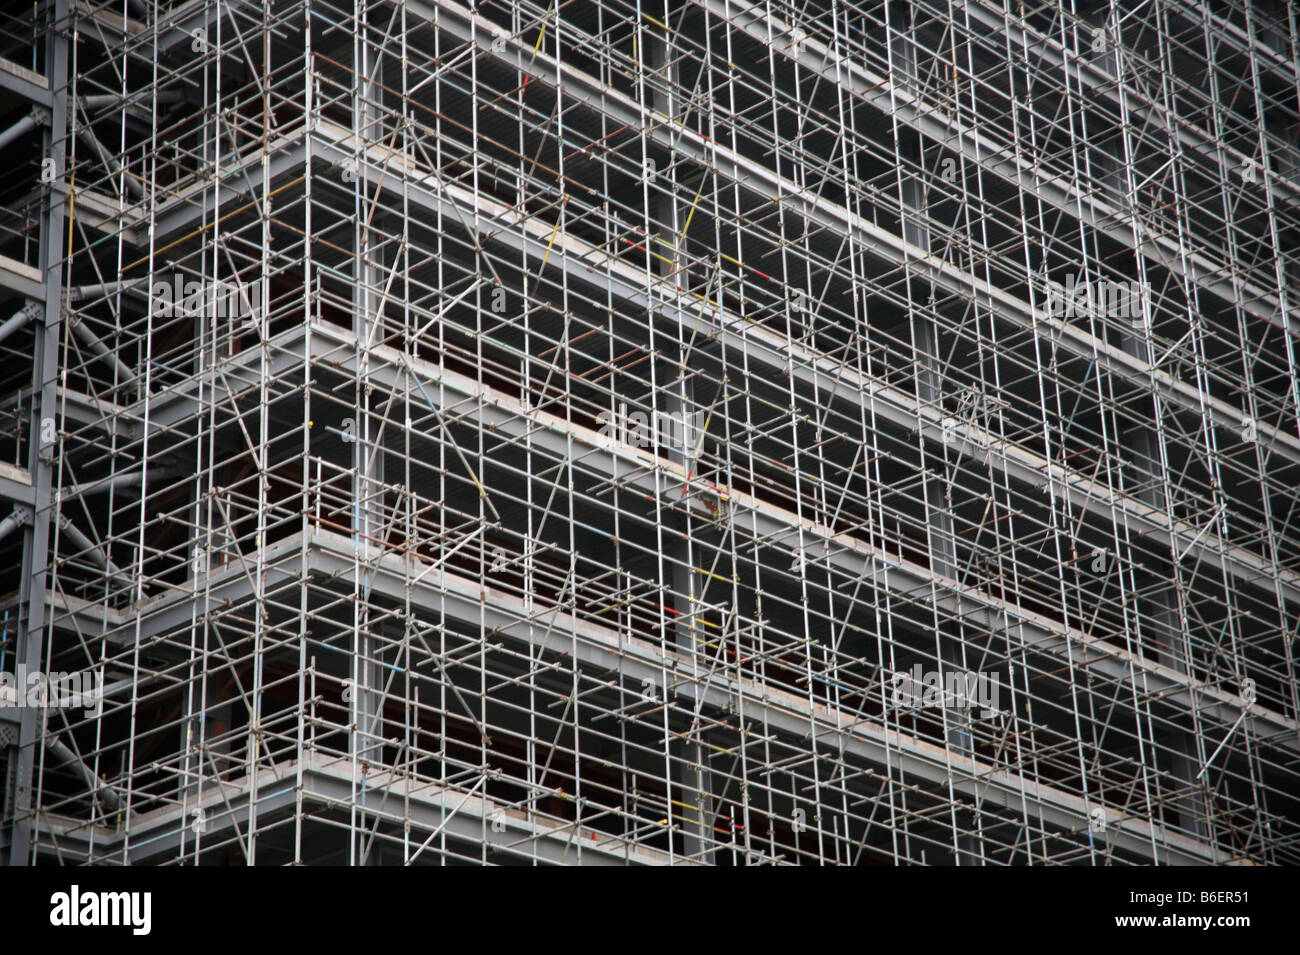 Scaffolding on construction site in London's Docklands - Stock Image